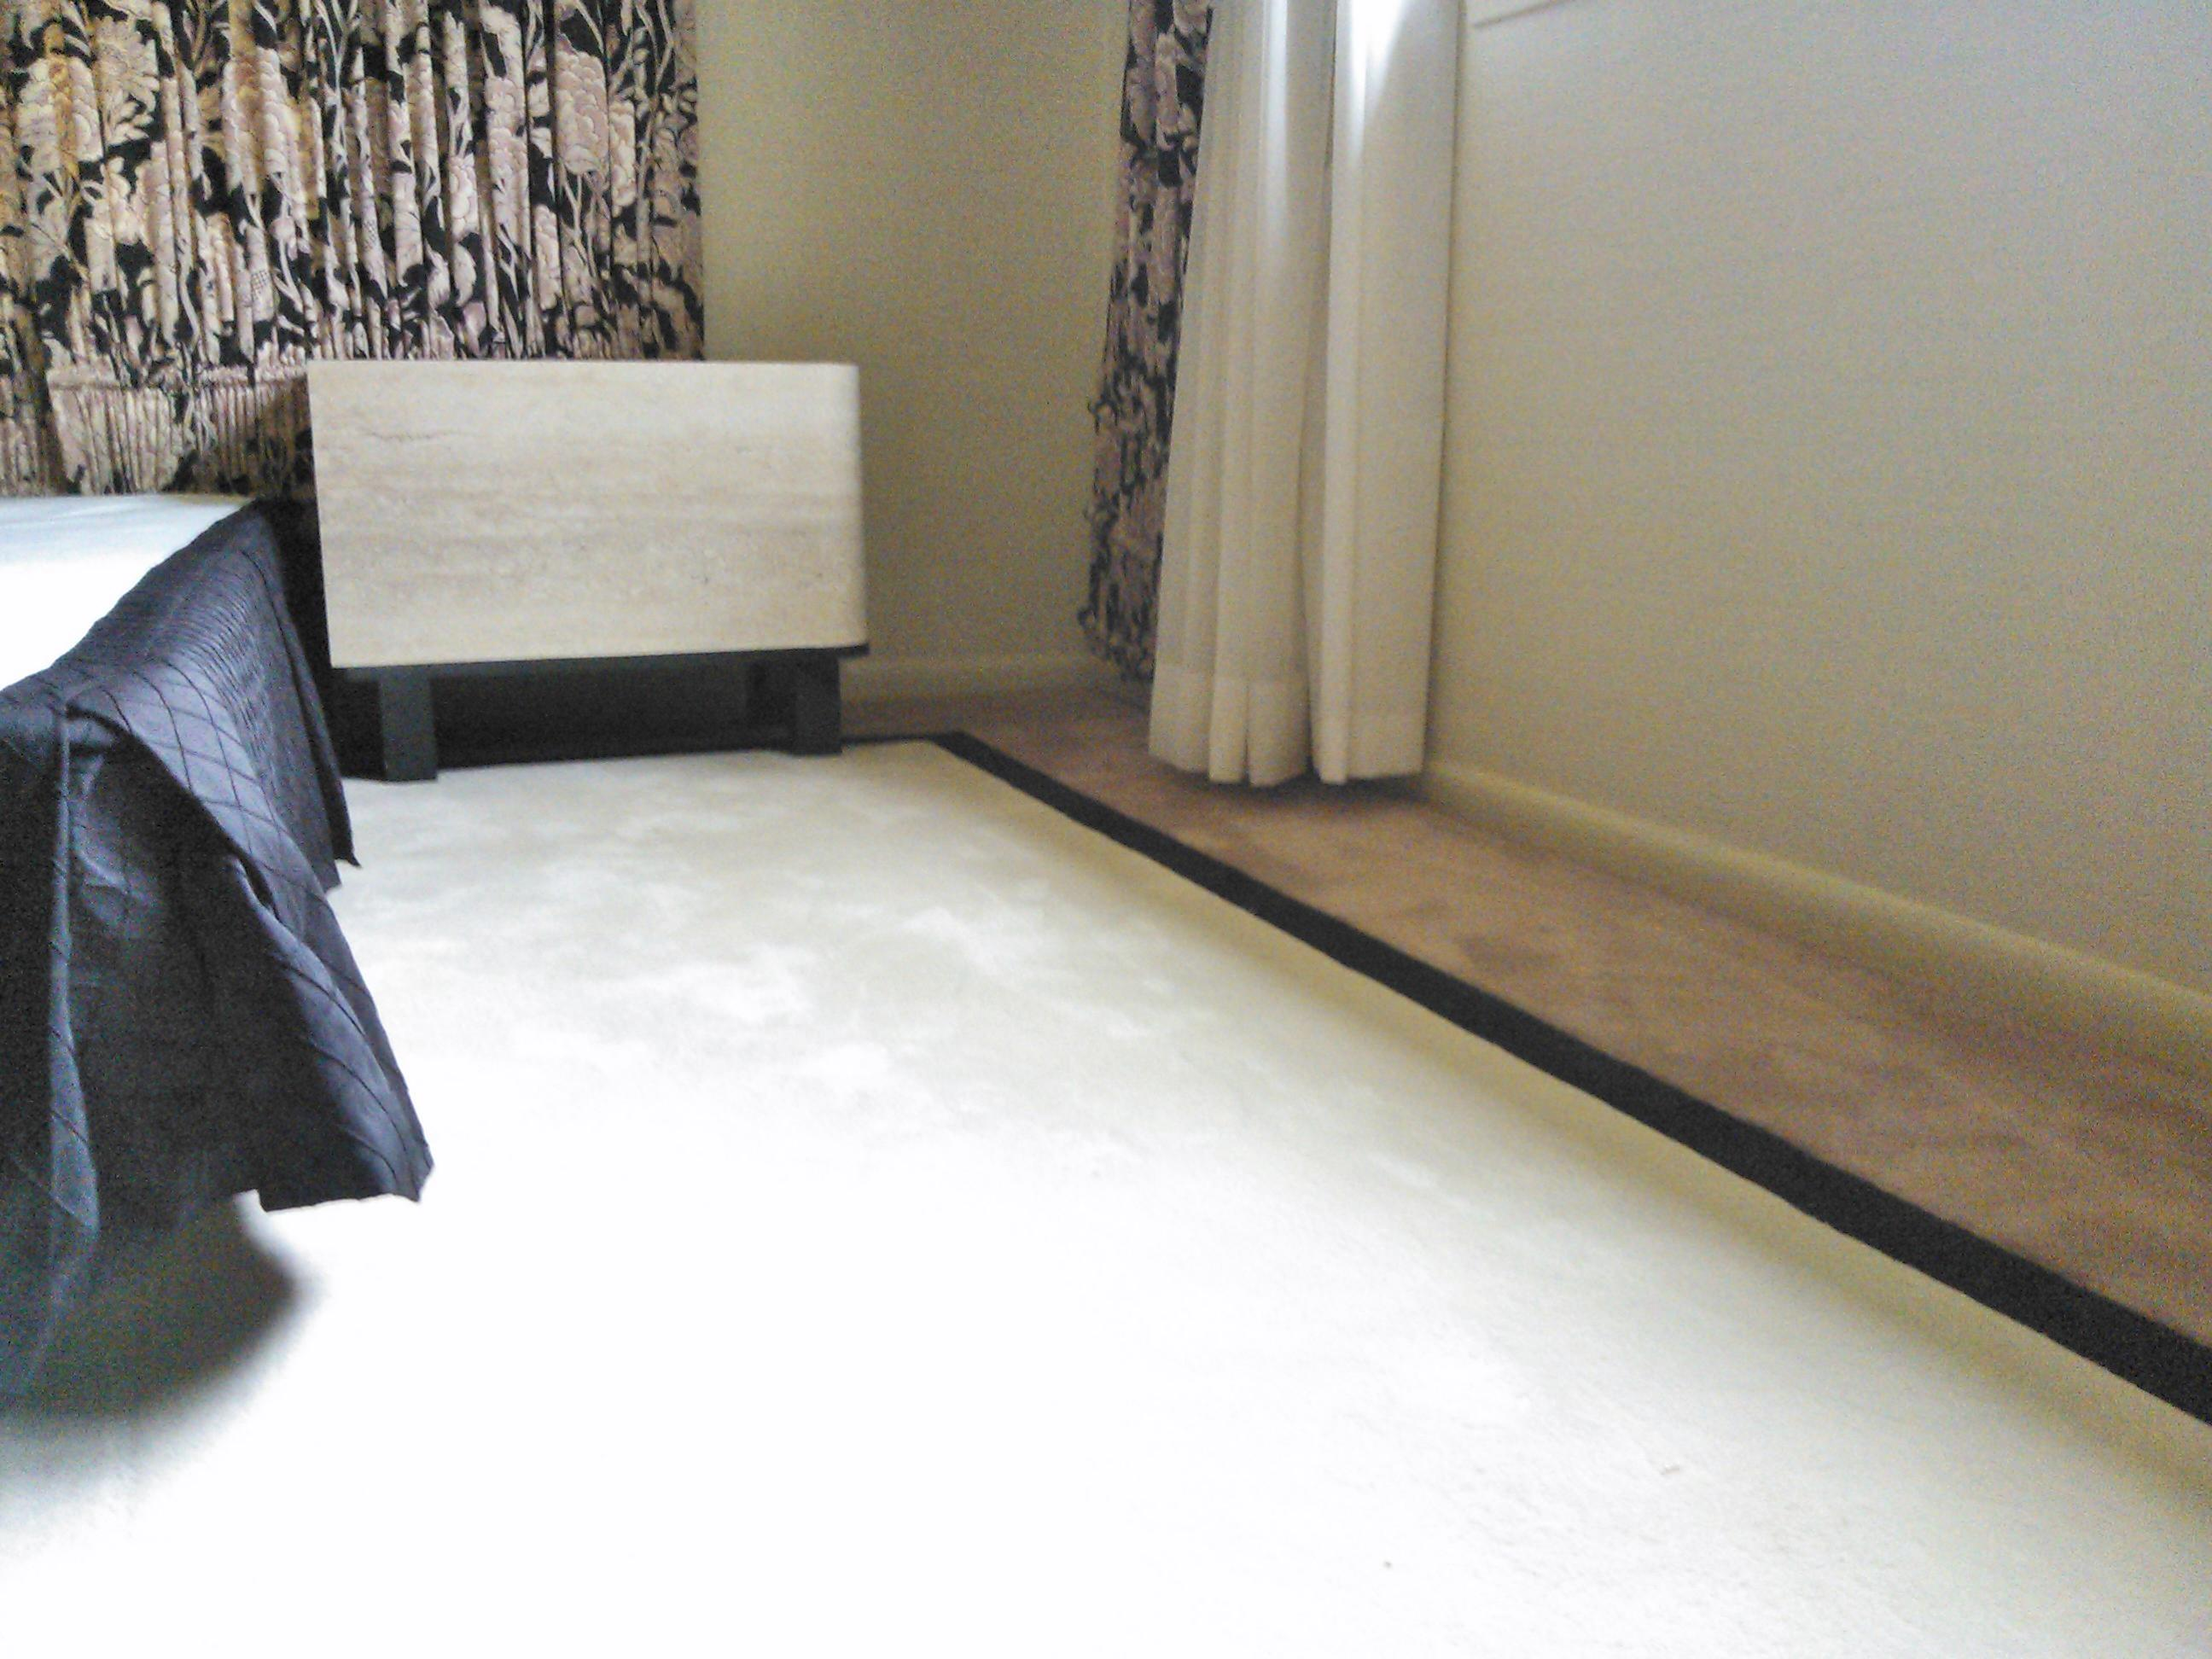 Carpet Installers in West Bloomfield, Michigan